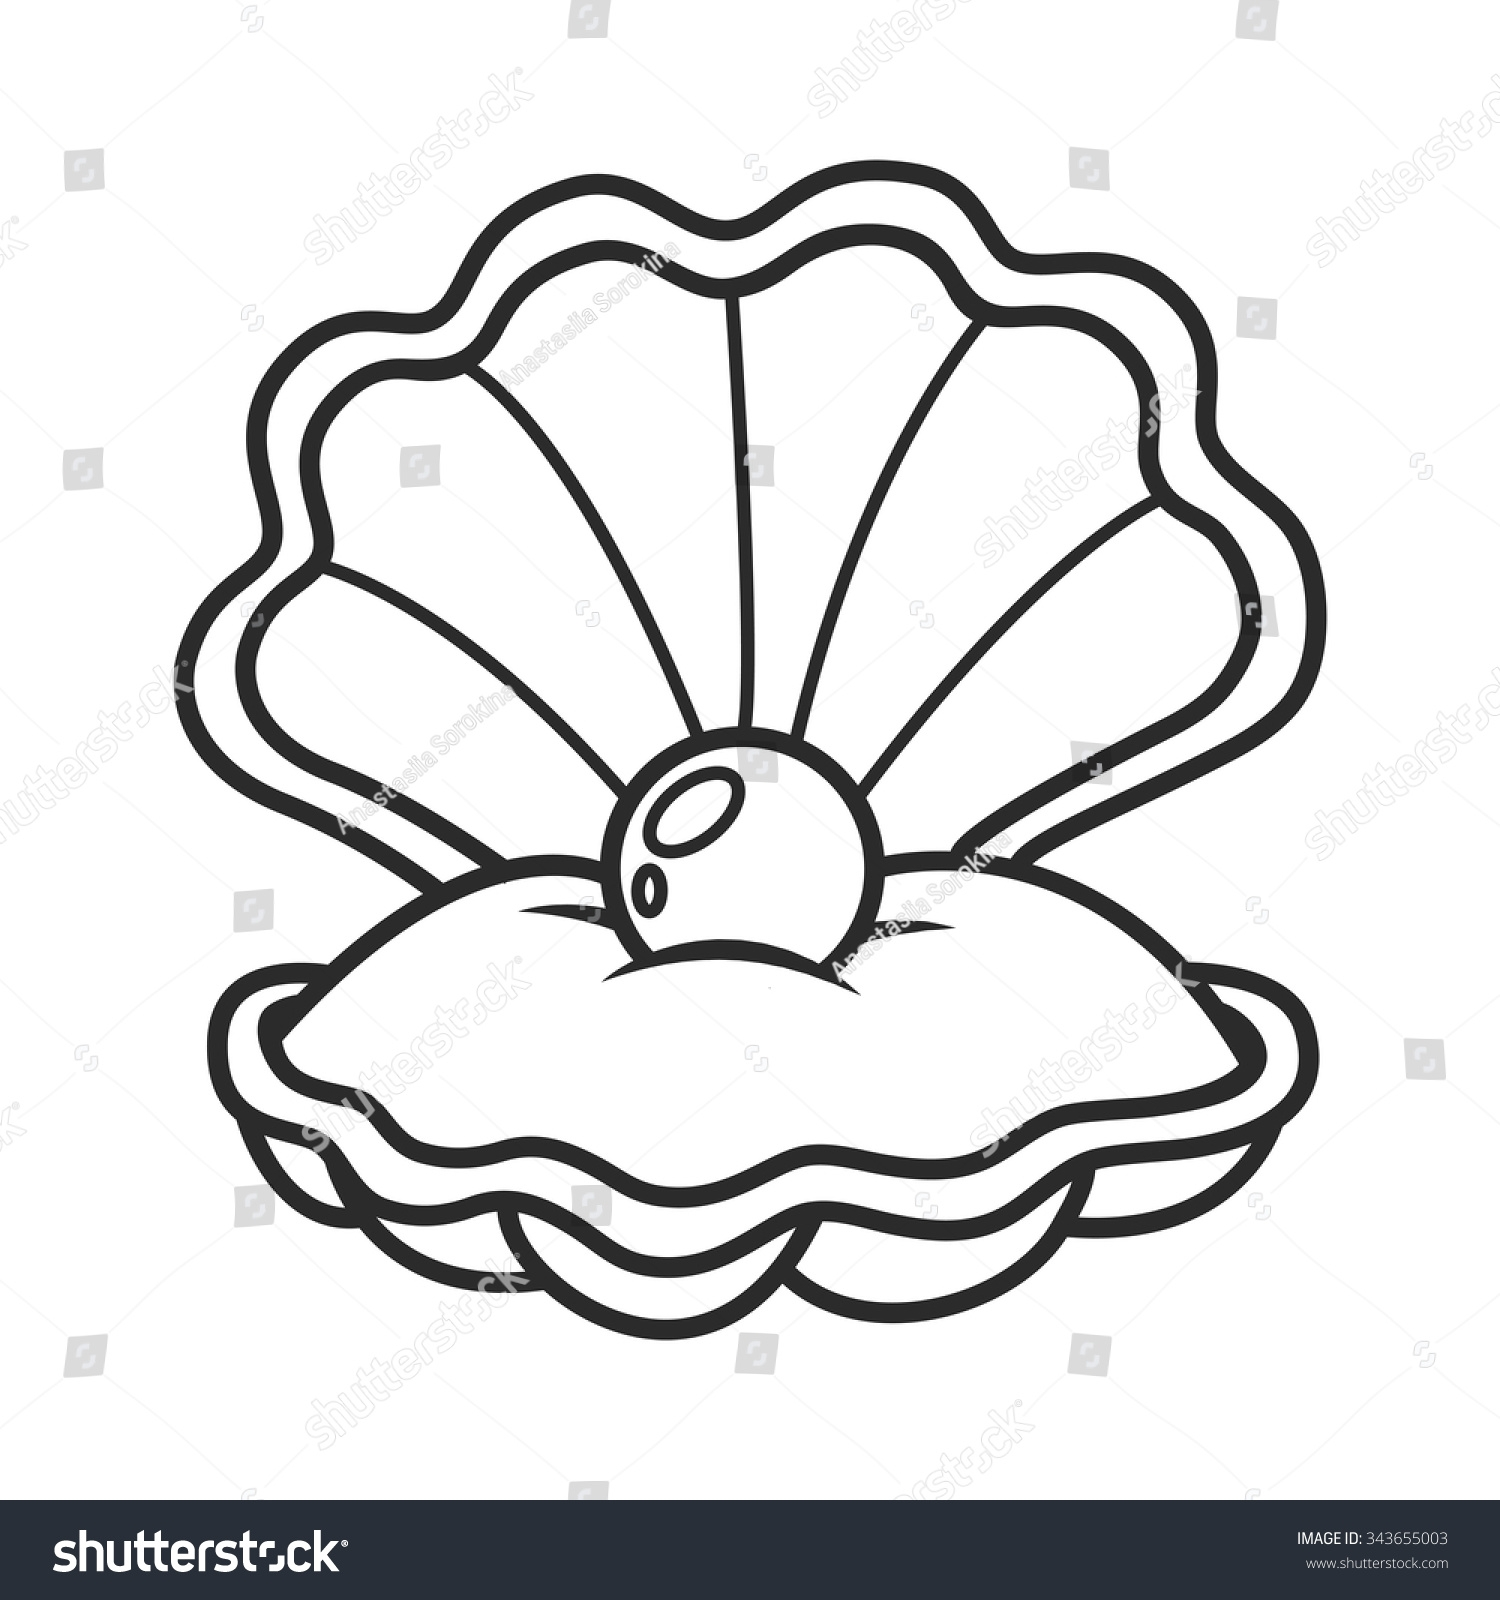 sea life coloring pages - stock vector open seashell with pearl part of the collection of marine life